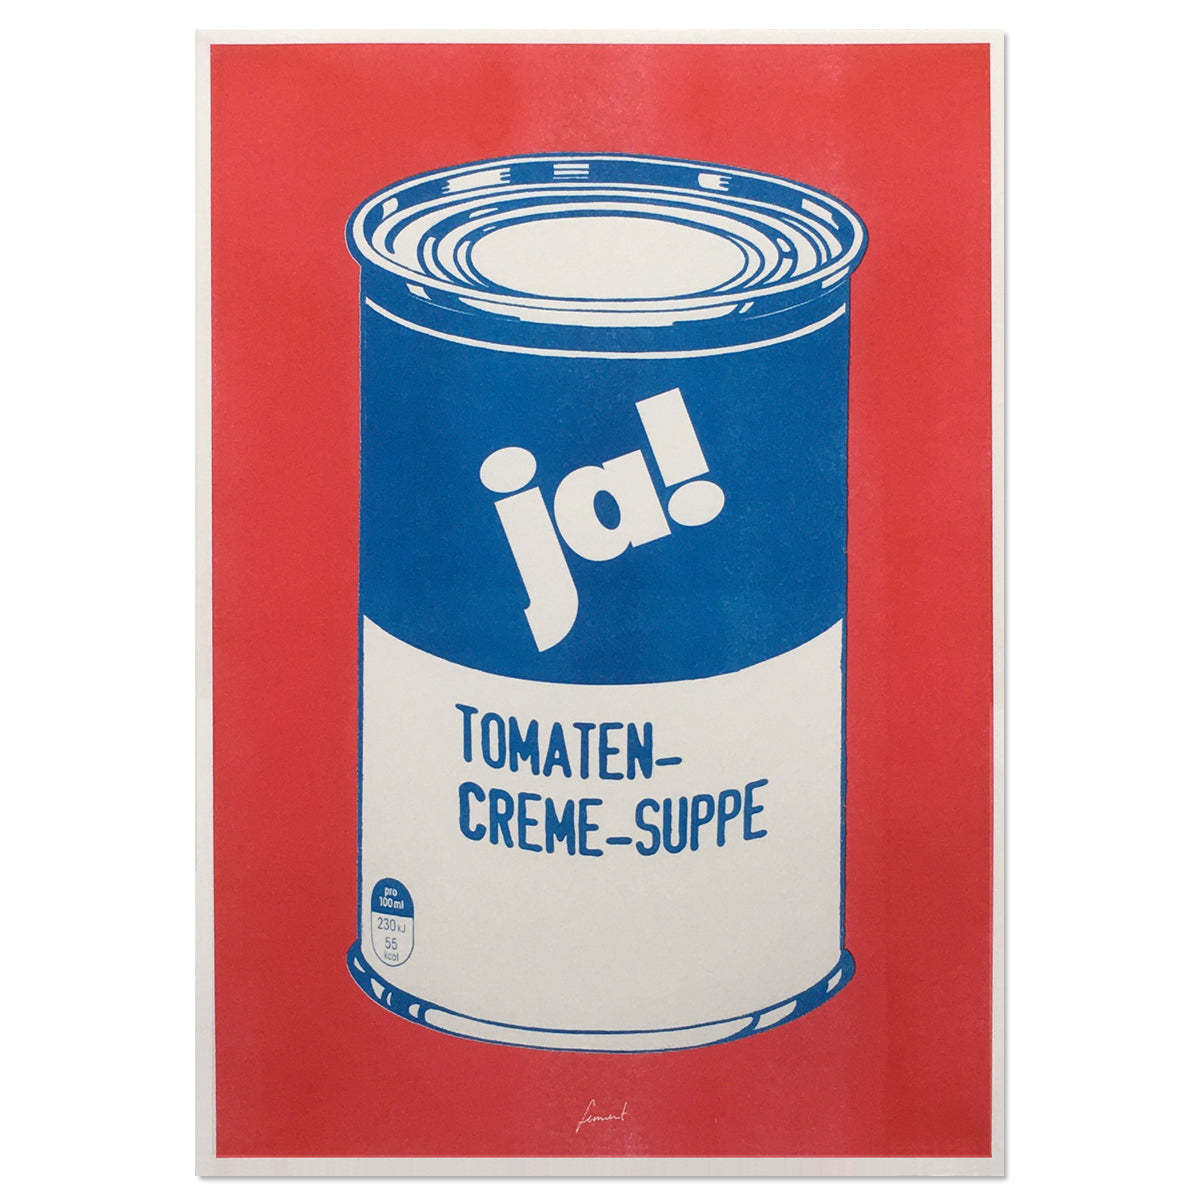 Risographie Tomaten-Creme-Suppe (Rot Blau)